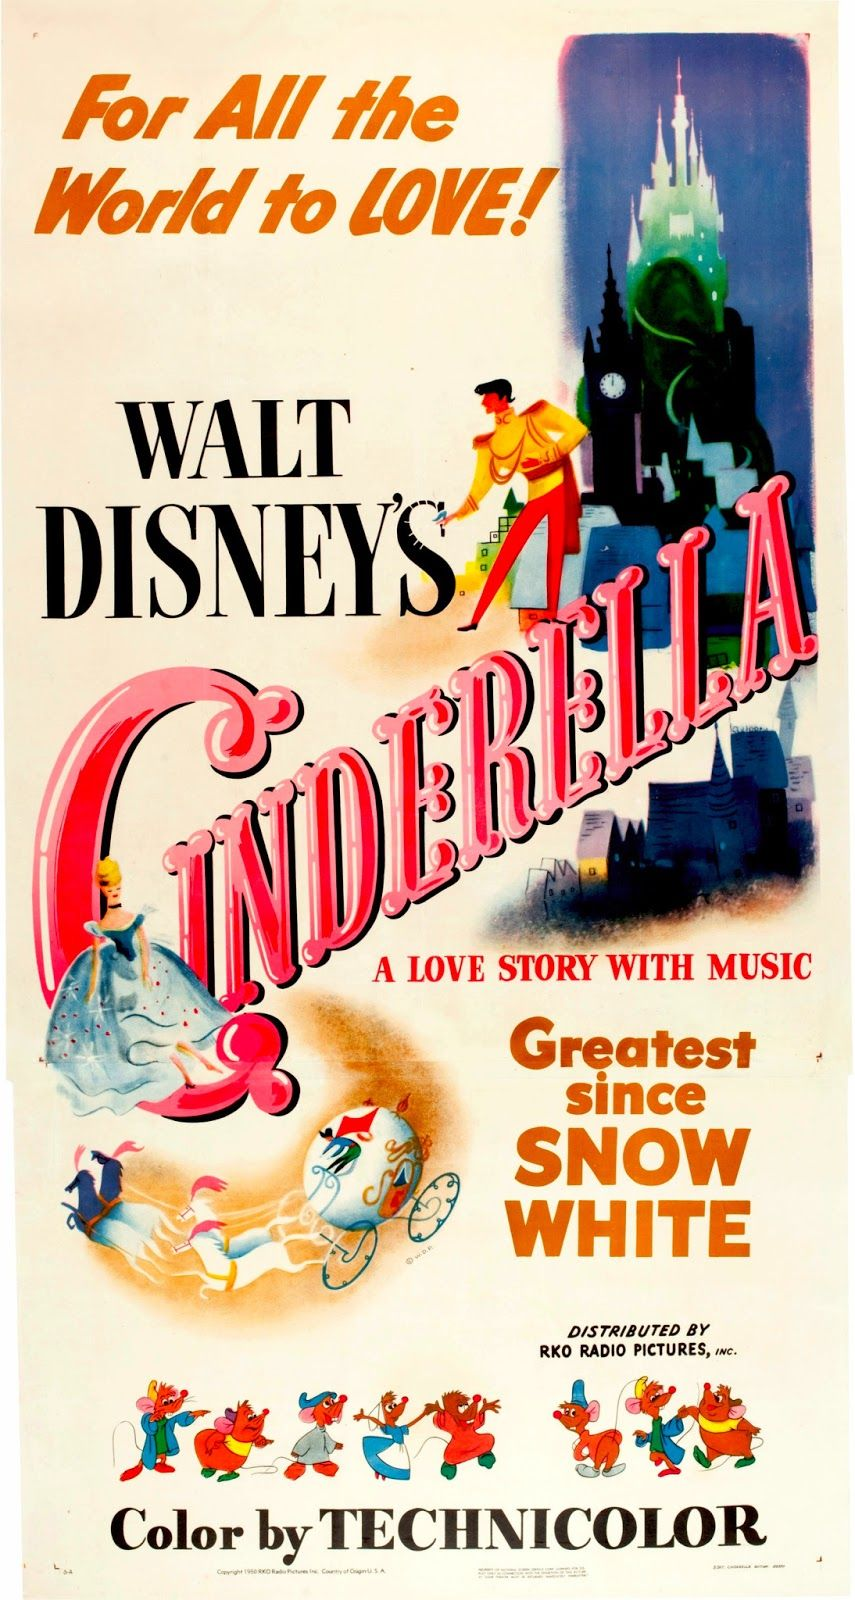 Another classic movie poster. Vintage disney posters